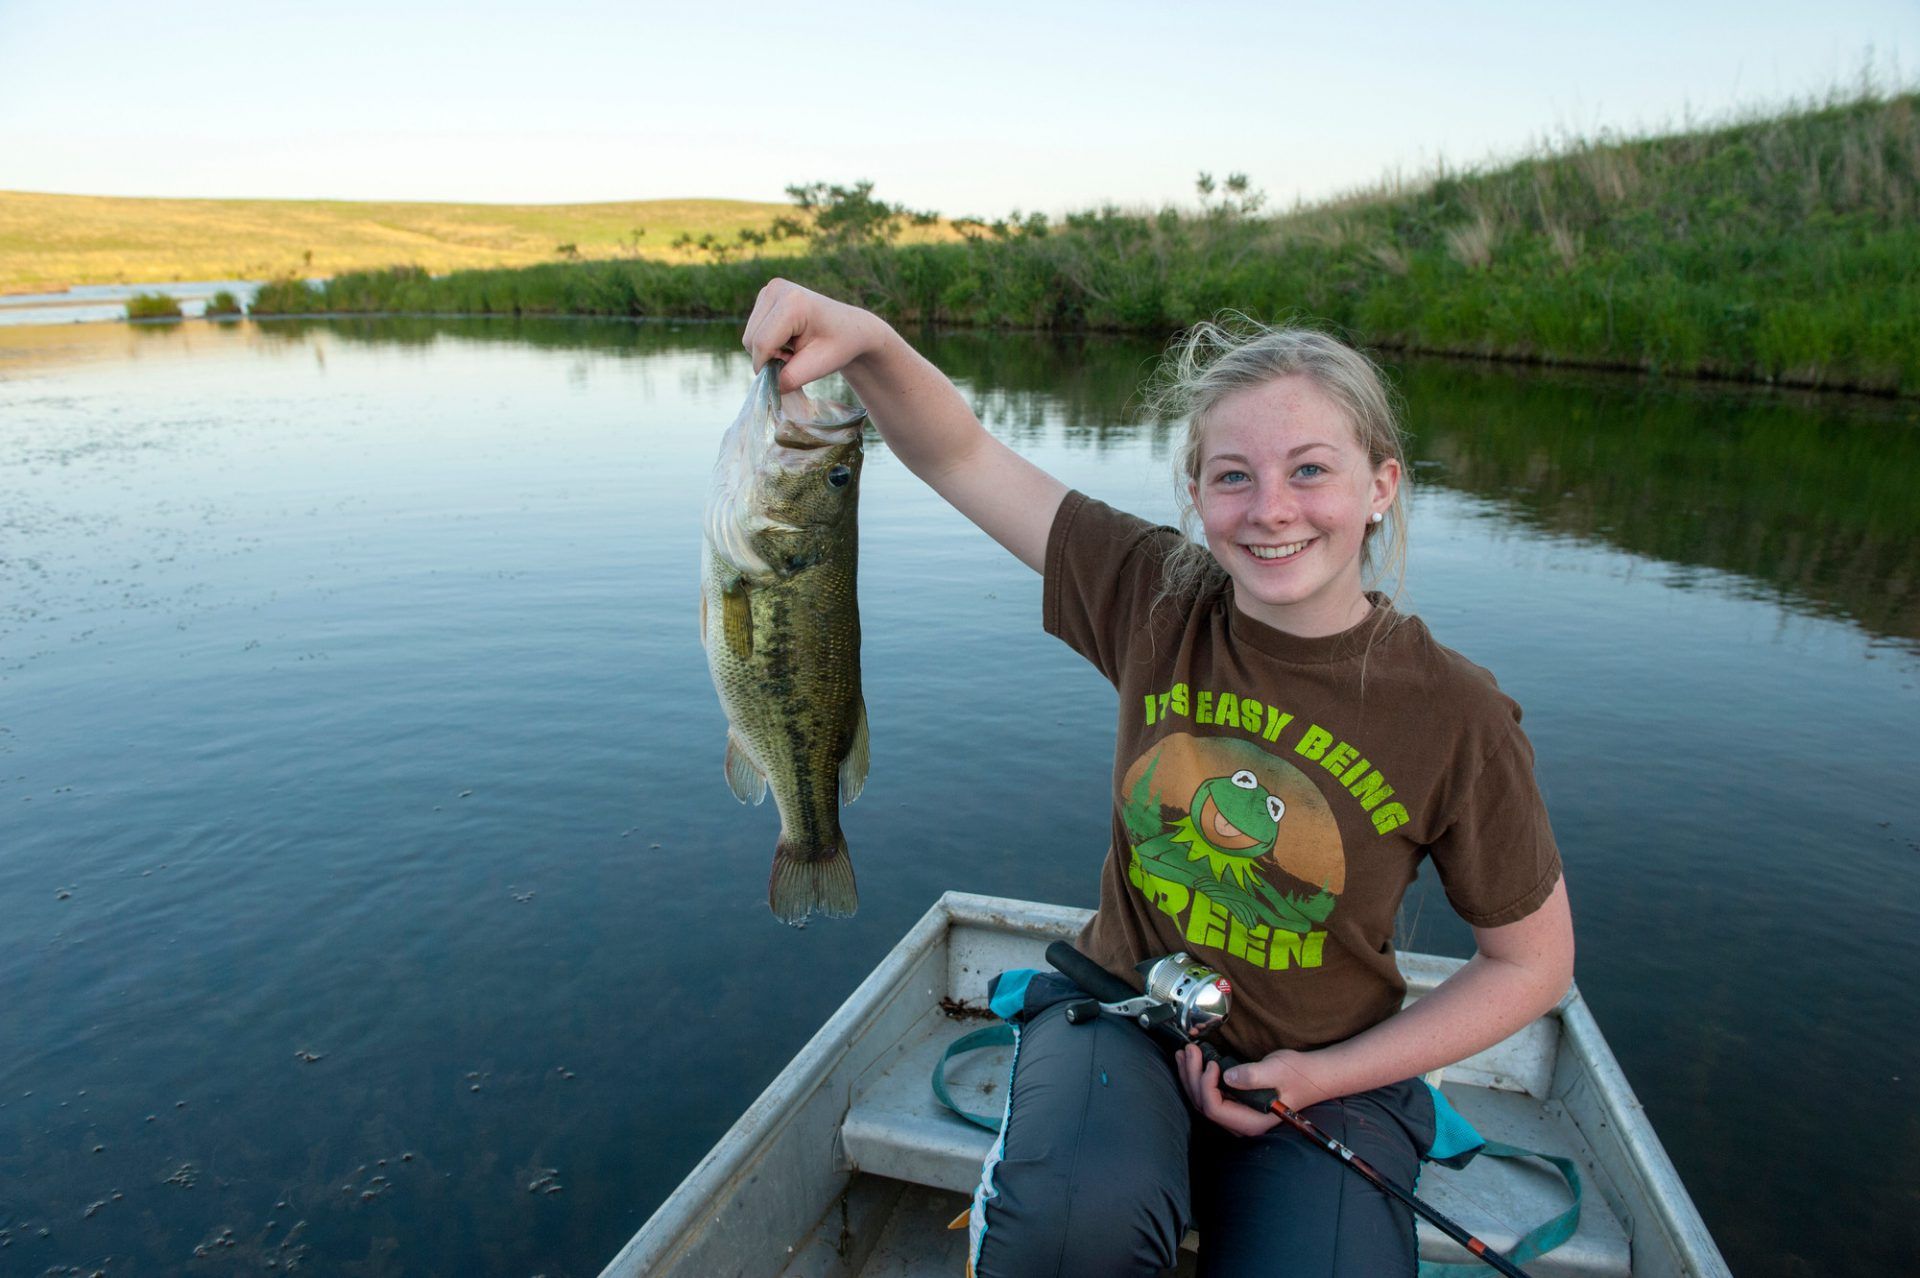 Photo: A teenage girl catches a fish out of a pond near Valparaiso, Nebraska.